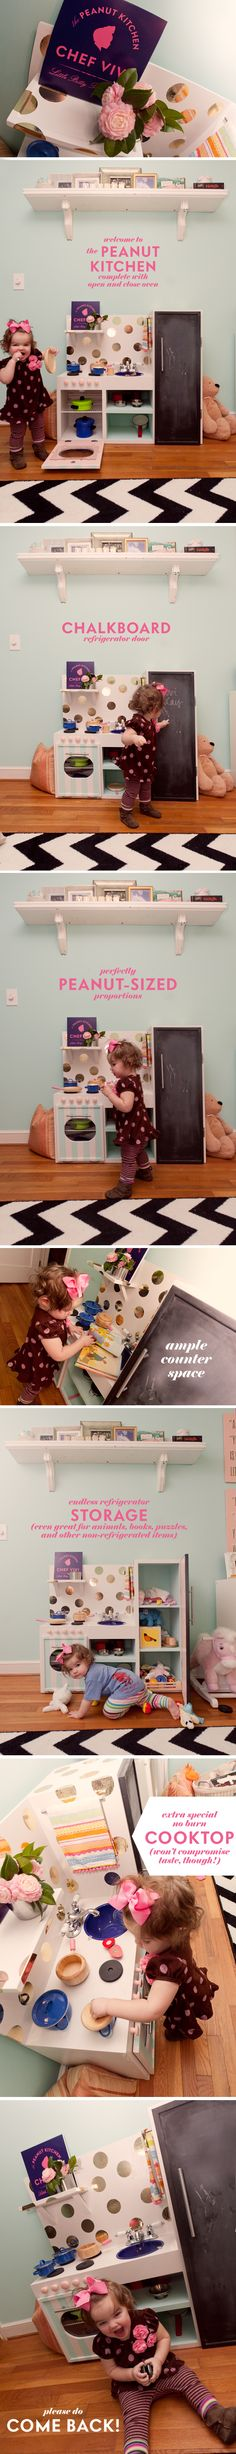 LOVE this handmade play kitchen! I aspire to have the time/resources to make a kitchen for Ellery someday!